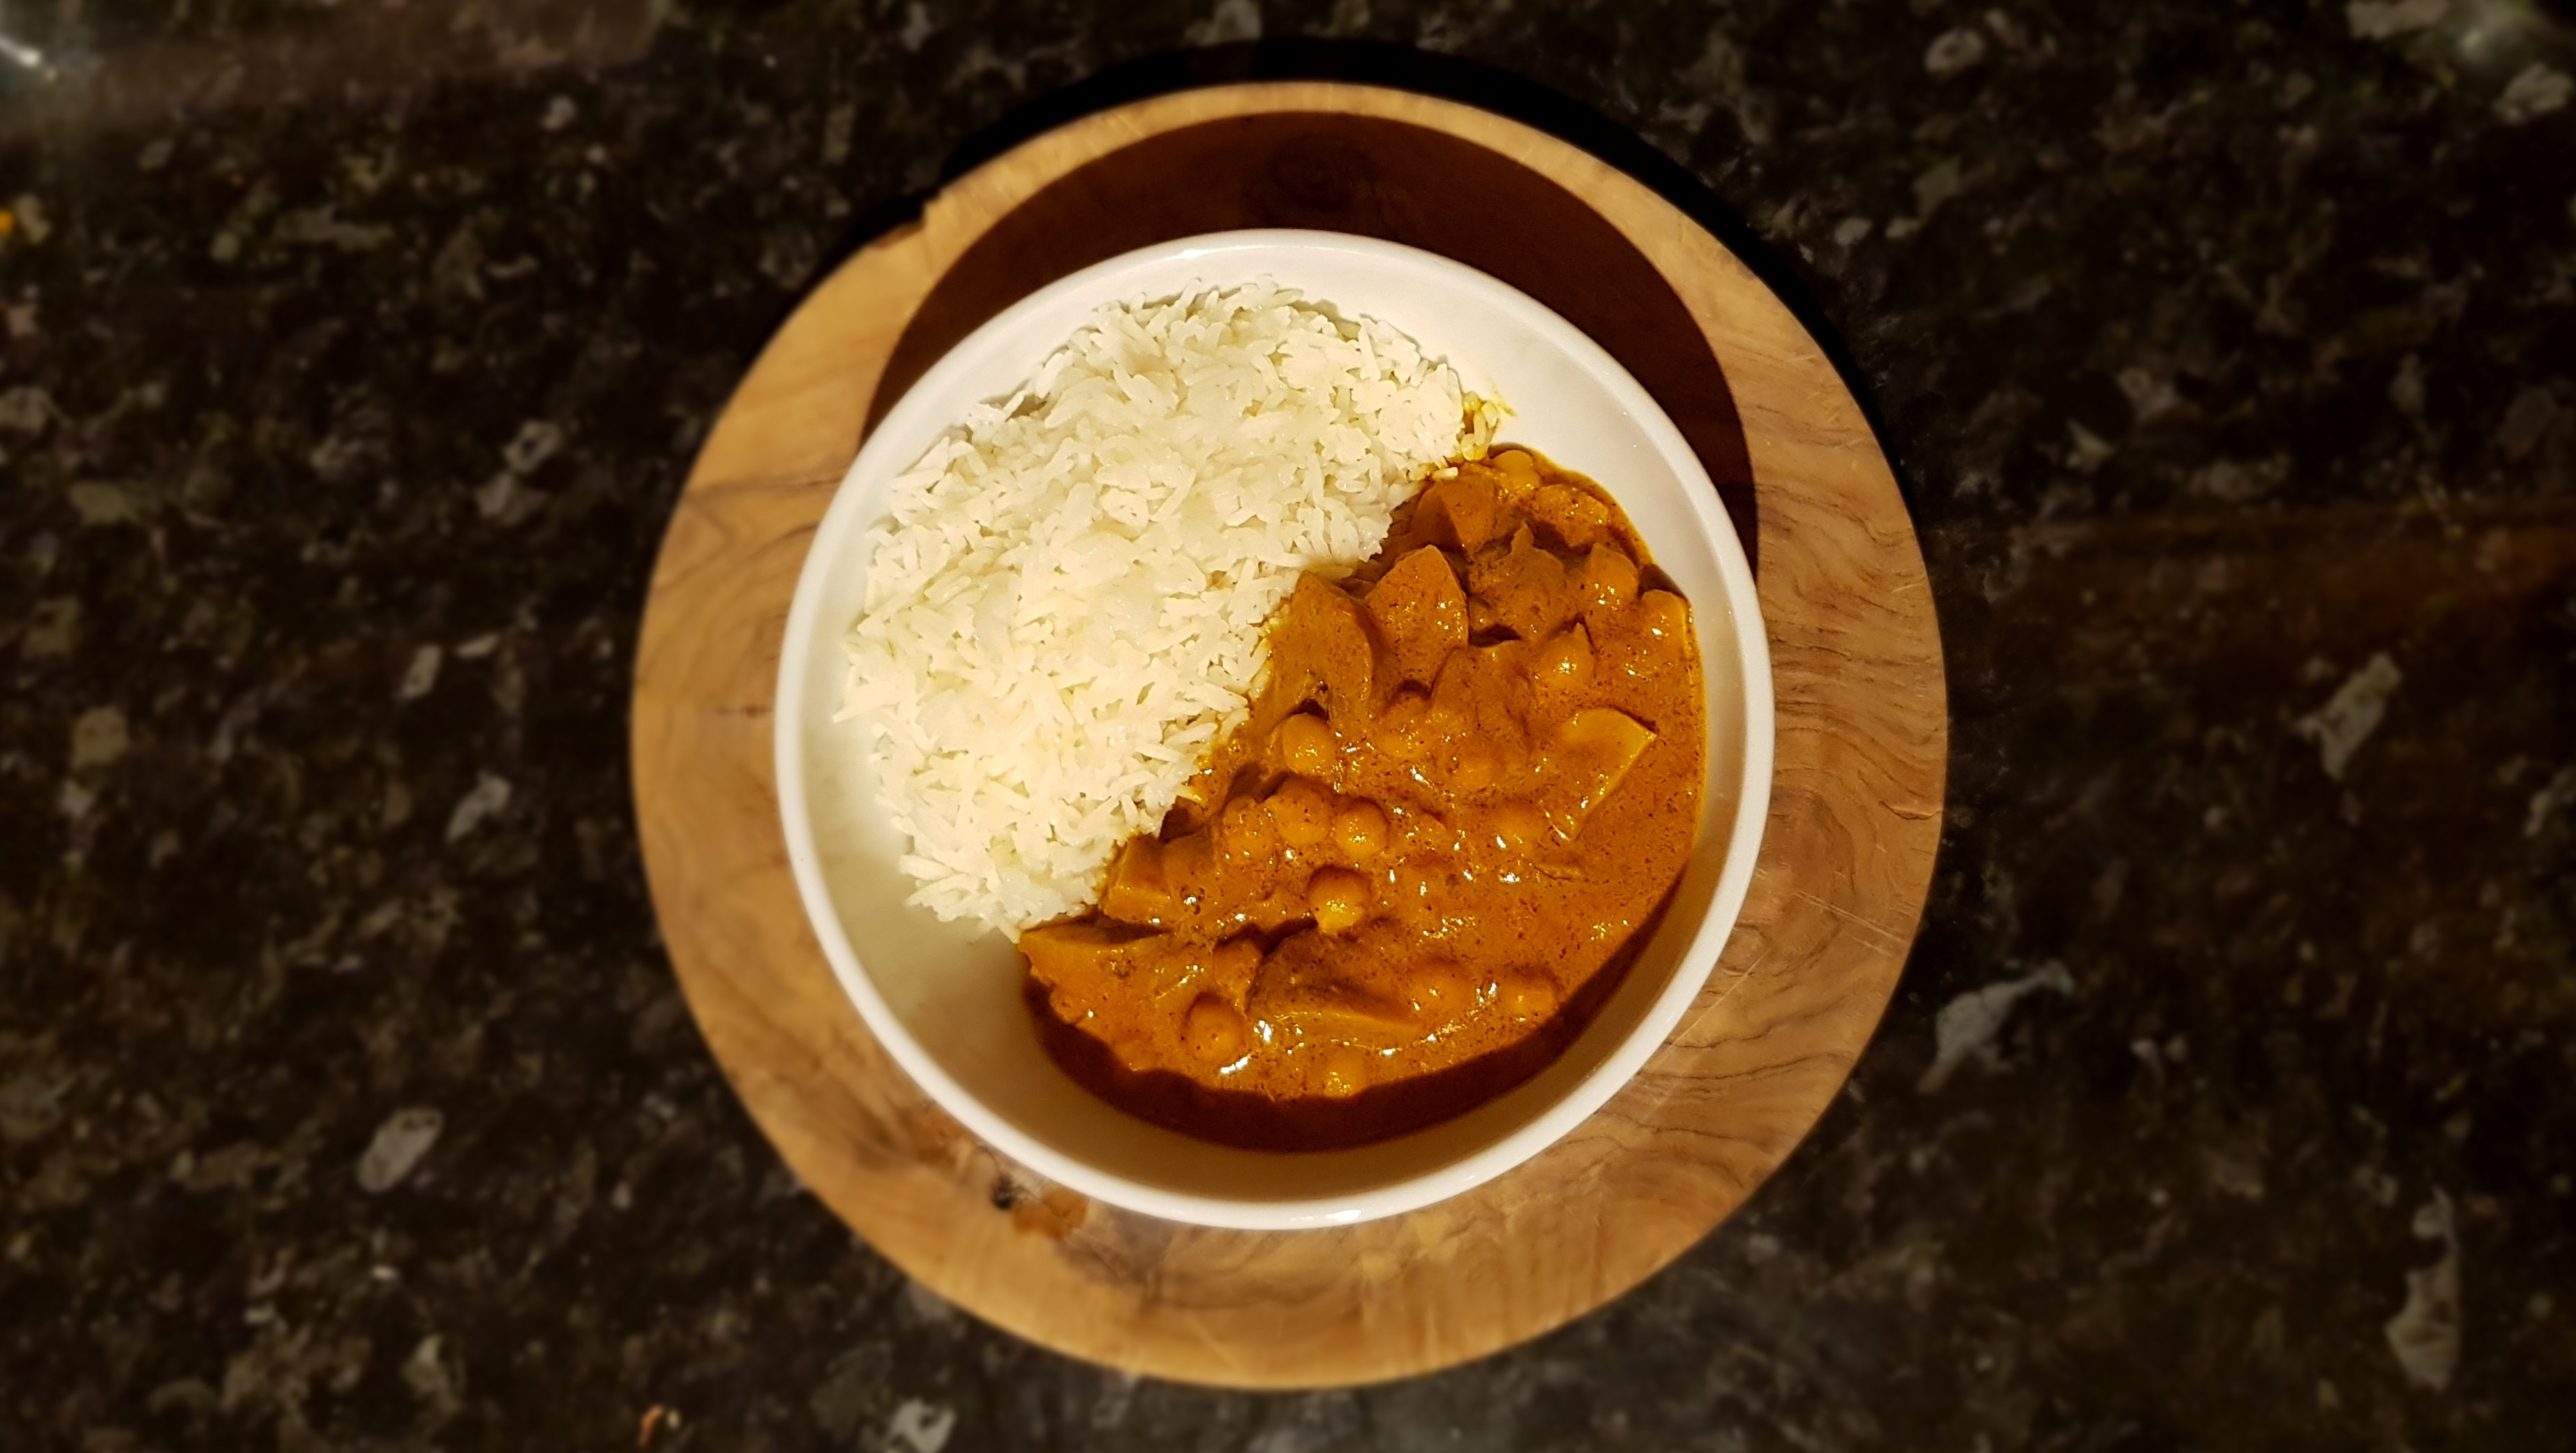 The finished Chickpea and Mushroom Tikka Masala